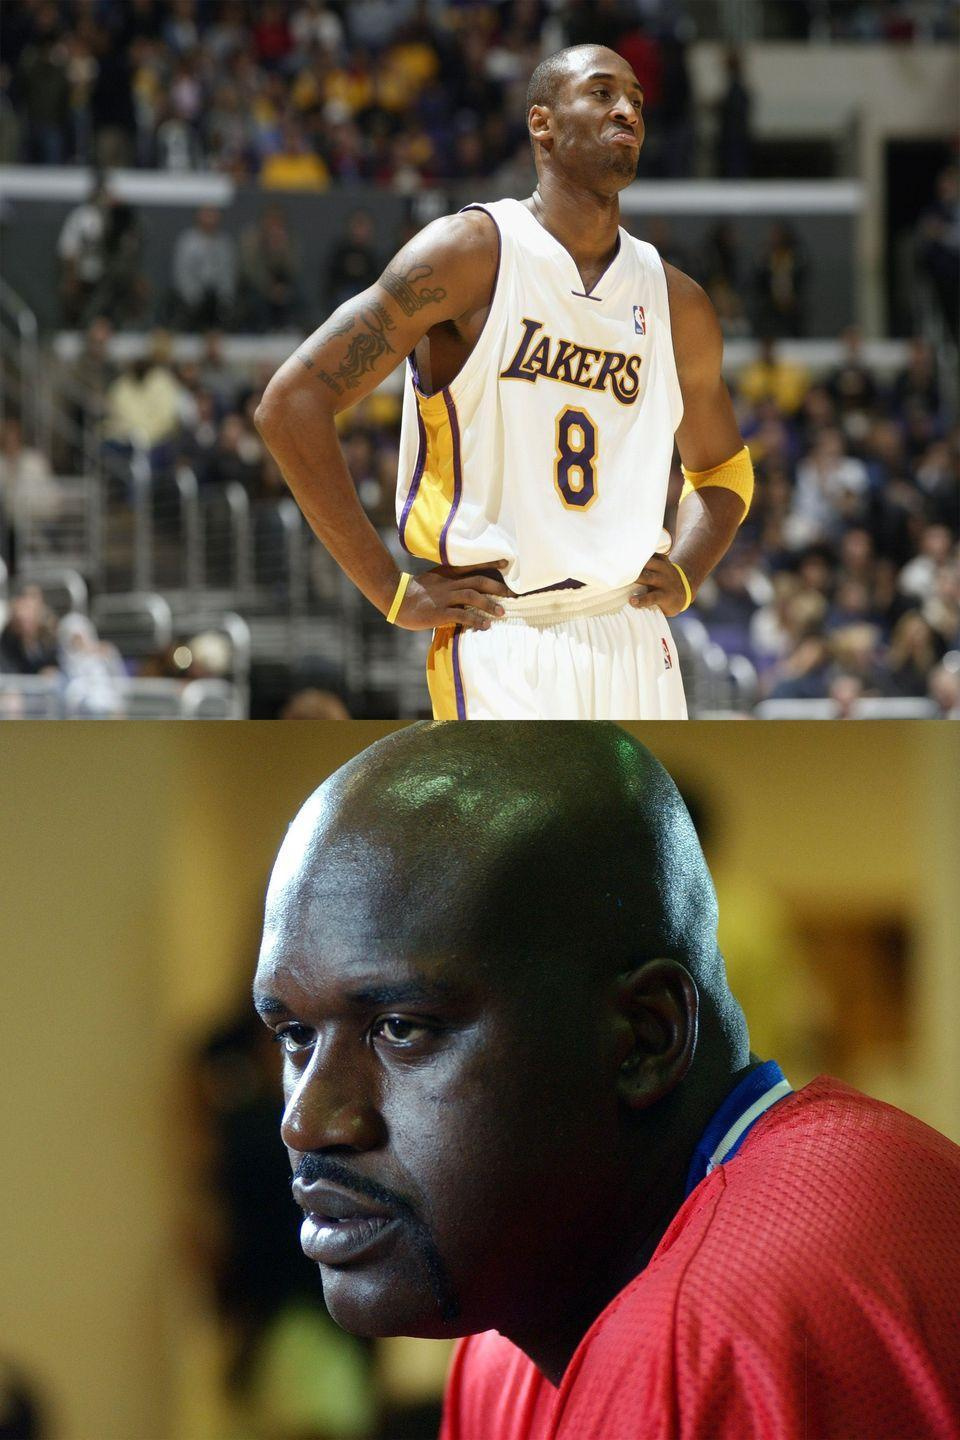 "<p>One of the biggest sports feuds of all time wasn't between rival teams—it was a power struggle between two giants on the Lakers. The teammates regularly crapped all over each other in the press, with O'Neal <a href=""http://chronicle.augusta.com/stories/2003/10/29/nba_398835.shtml#.WWgTdIjyvIU"" rel=""nofollow noopener"" target=""_blank"" data-ylk=""slk:calling the Lakers"" class=""link rapid-noclick-resp"">calling the Lakers</a> ""my team,"" and Bryant responding by calling him ""child-like,"" ""jealous,"" and ""fat."" It got so bad that Coach Phil Jackson called a team meeting to attempt to work things out. ""We haven't had a really good example here of maturity,"" he told <a href=""http://chronicle.augusta.com/stories/2003/10/29/nba_398835.shtml#.WWgTdIjyvIU"" rel=""nofollow noopener"" target=""_blank"" data-ylk=""slk:the Associated Press"" class=""link rapid-noclick-resp"">the Associated Press</a>. At the end of the season, O'Neal was traded and the feud became a slightly healthier inter-team rivalry.</p>"